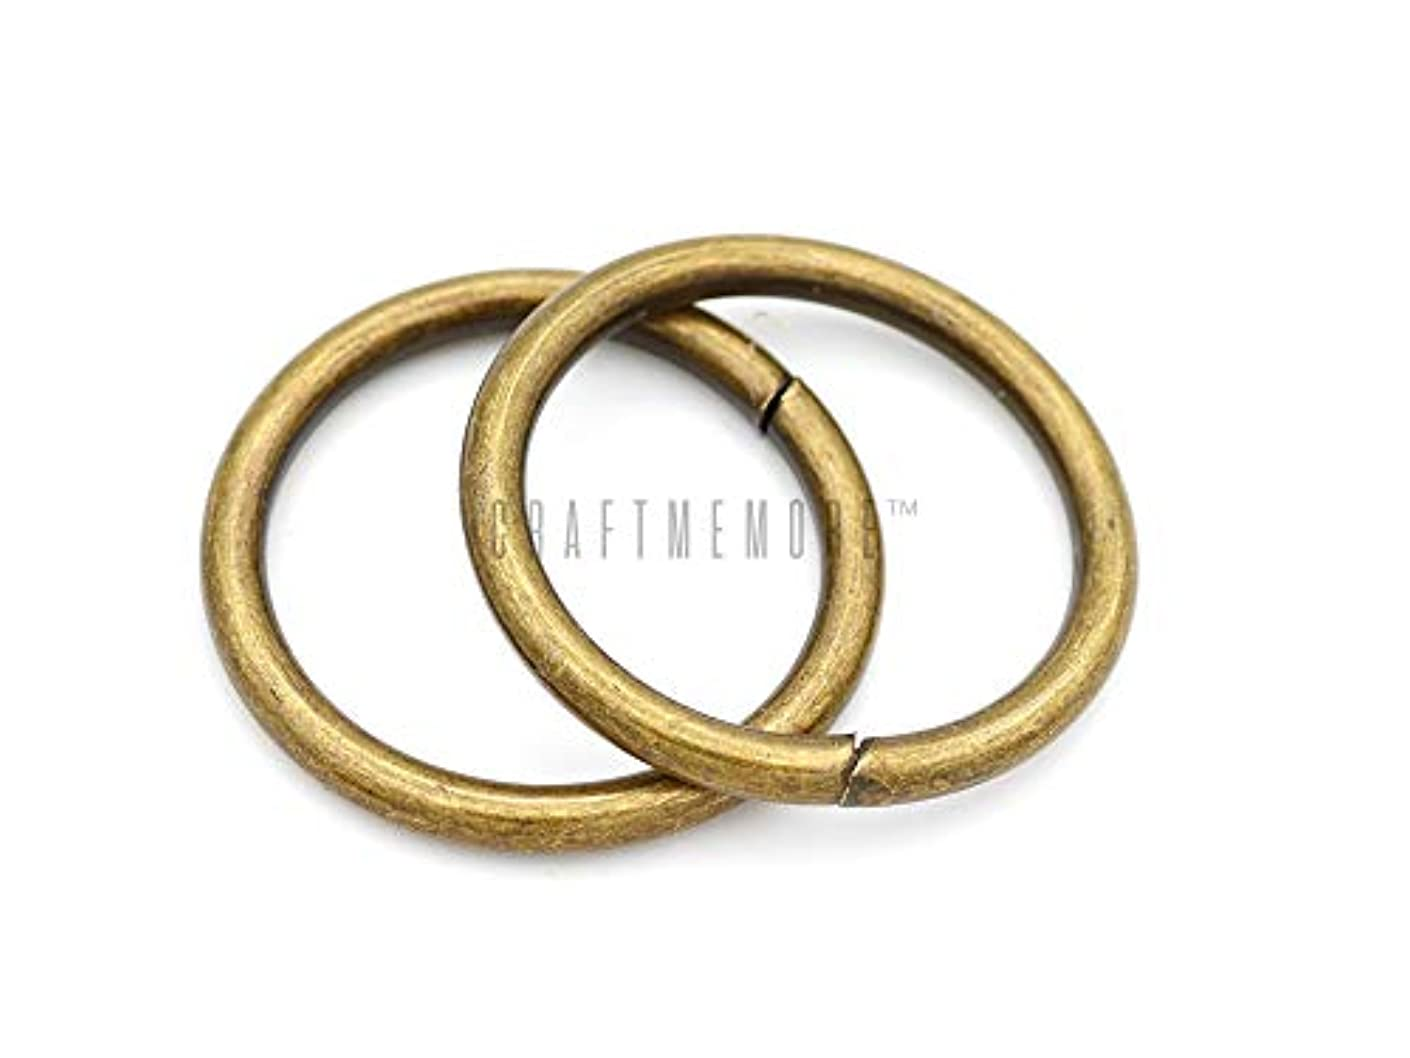 CRAFTMEmore O-Ring Findings Metal Non-Welded O Rings for Belts Bags Landyard DIY Leather Hand Craft (1-1/2